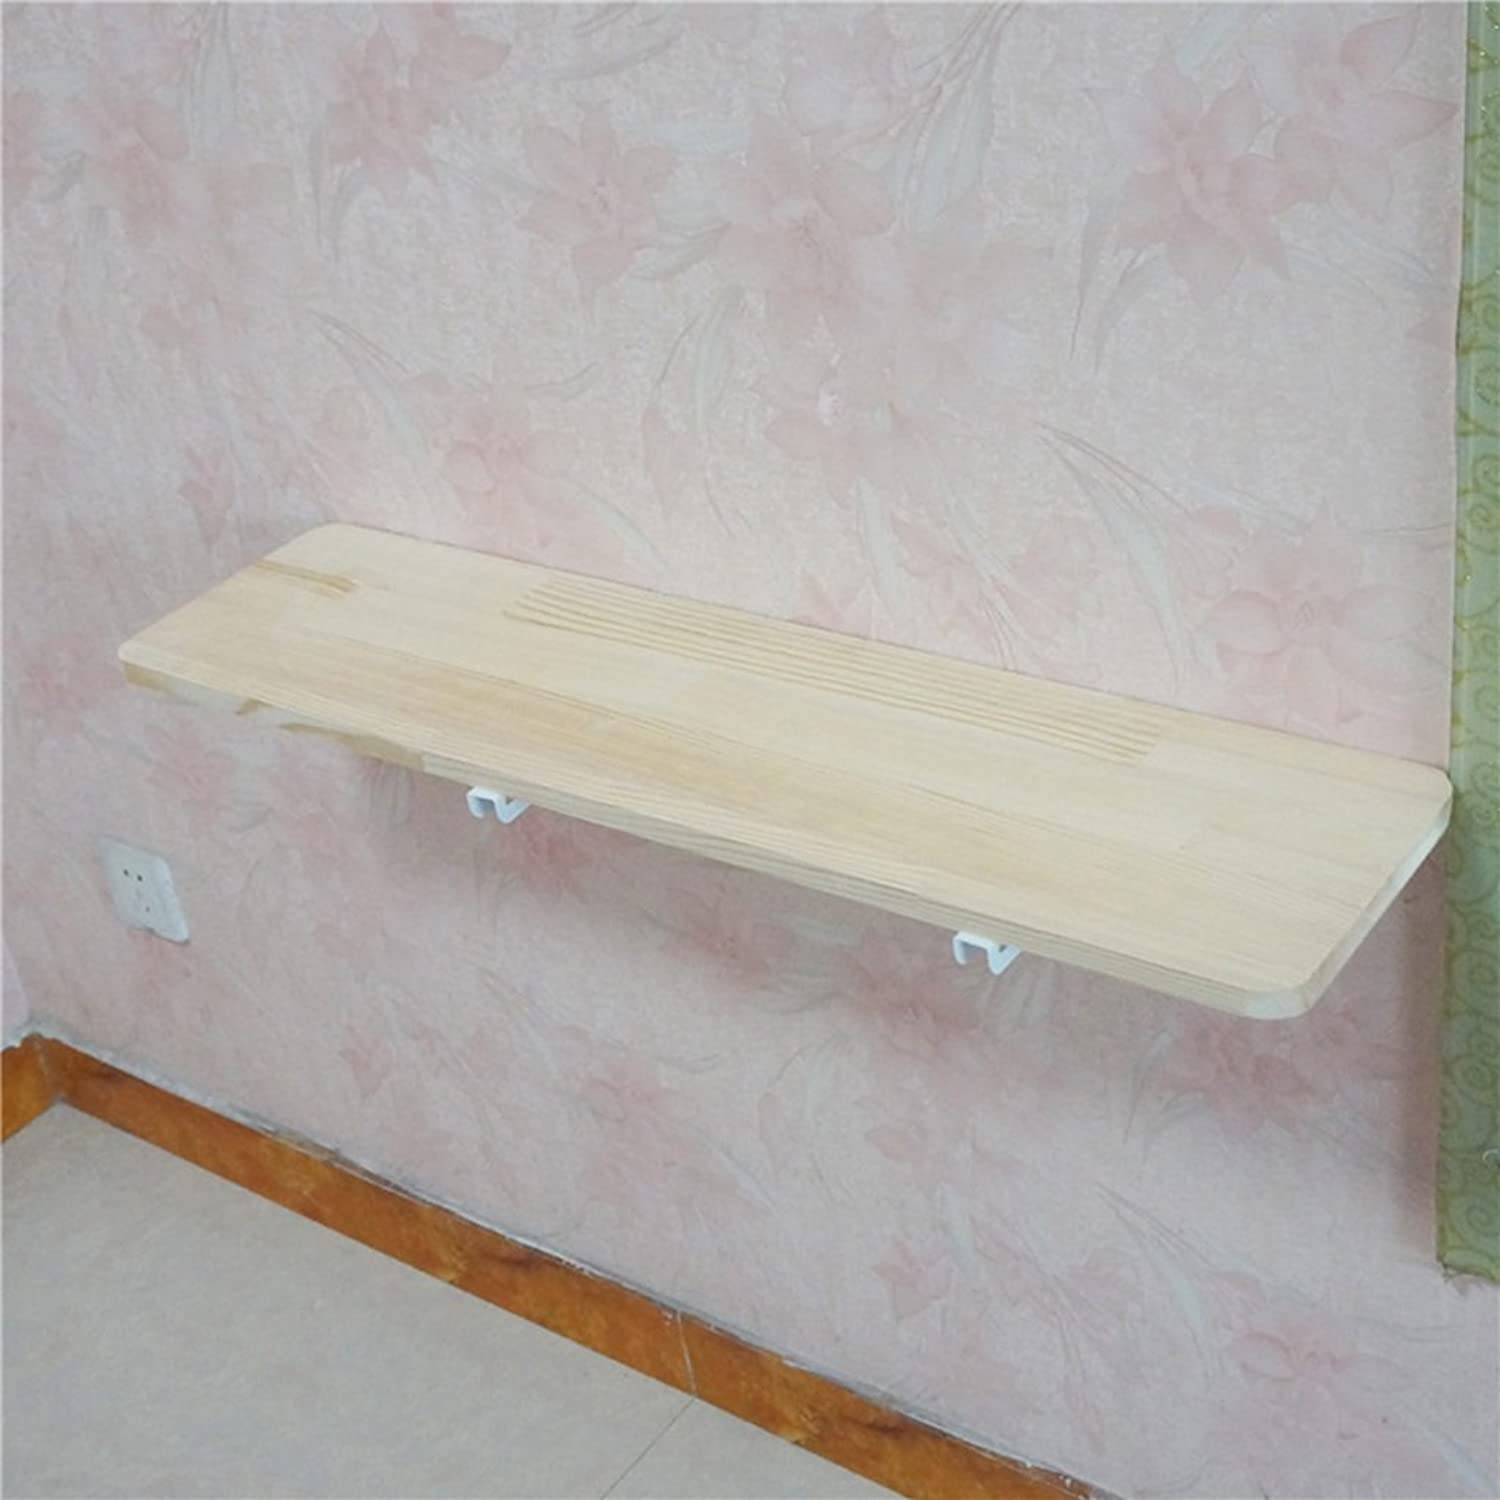 Solid Wood Folding Dining Table Household Wall-Mounted Table Simple Bedroom Side Table Size Optional (Size   60cm20cm)